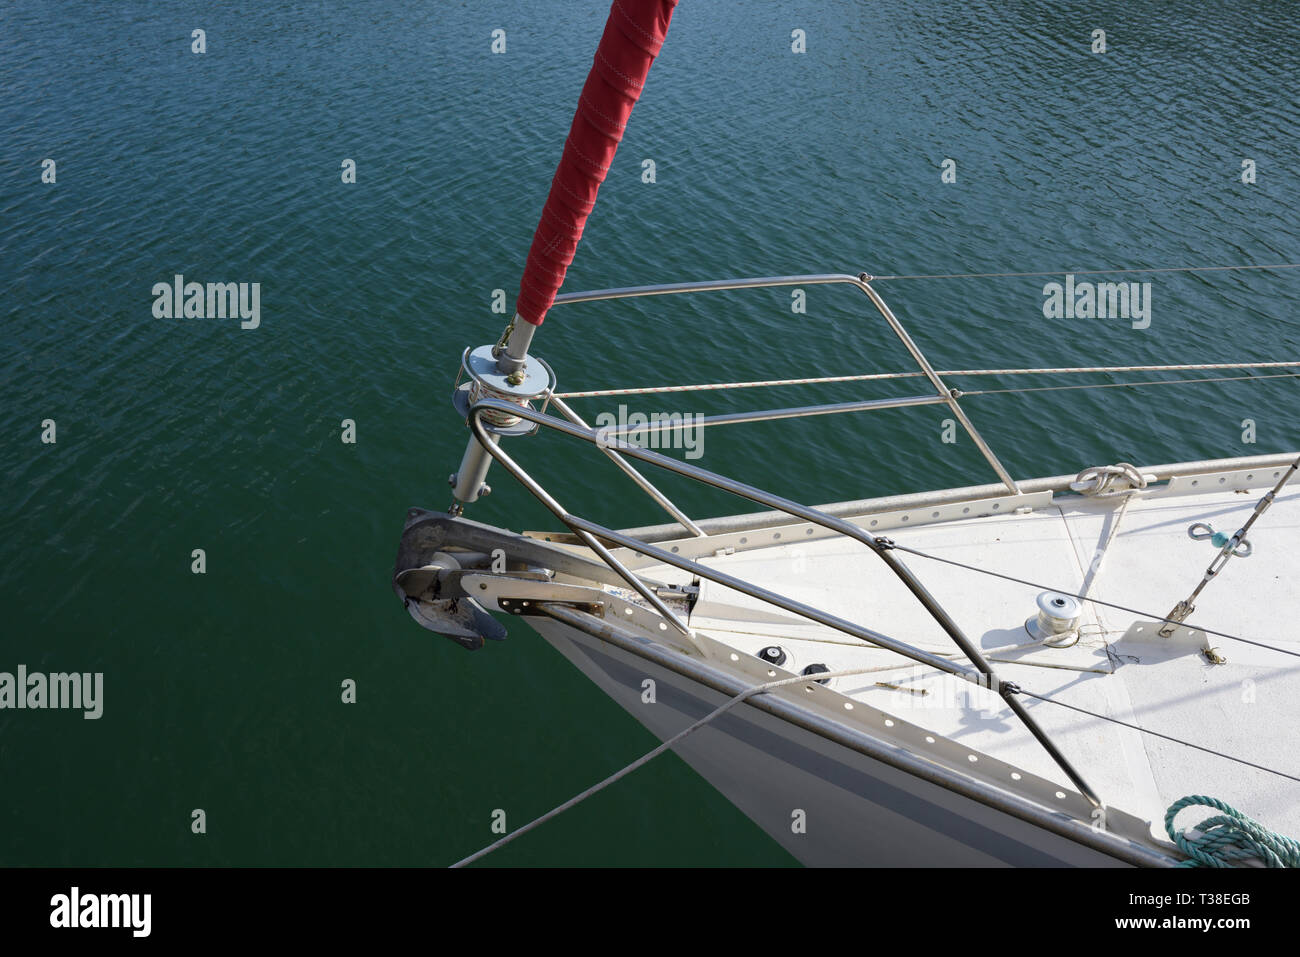 Bow of white sailing boat with stainless steel guardrail and furled jib with red uv protective cover, in north wales uk - Stock Image